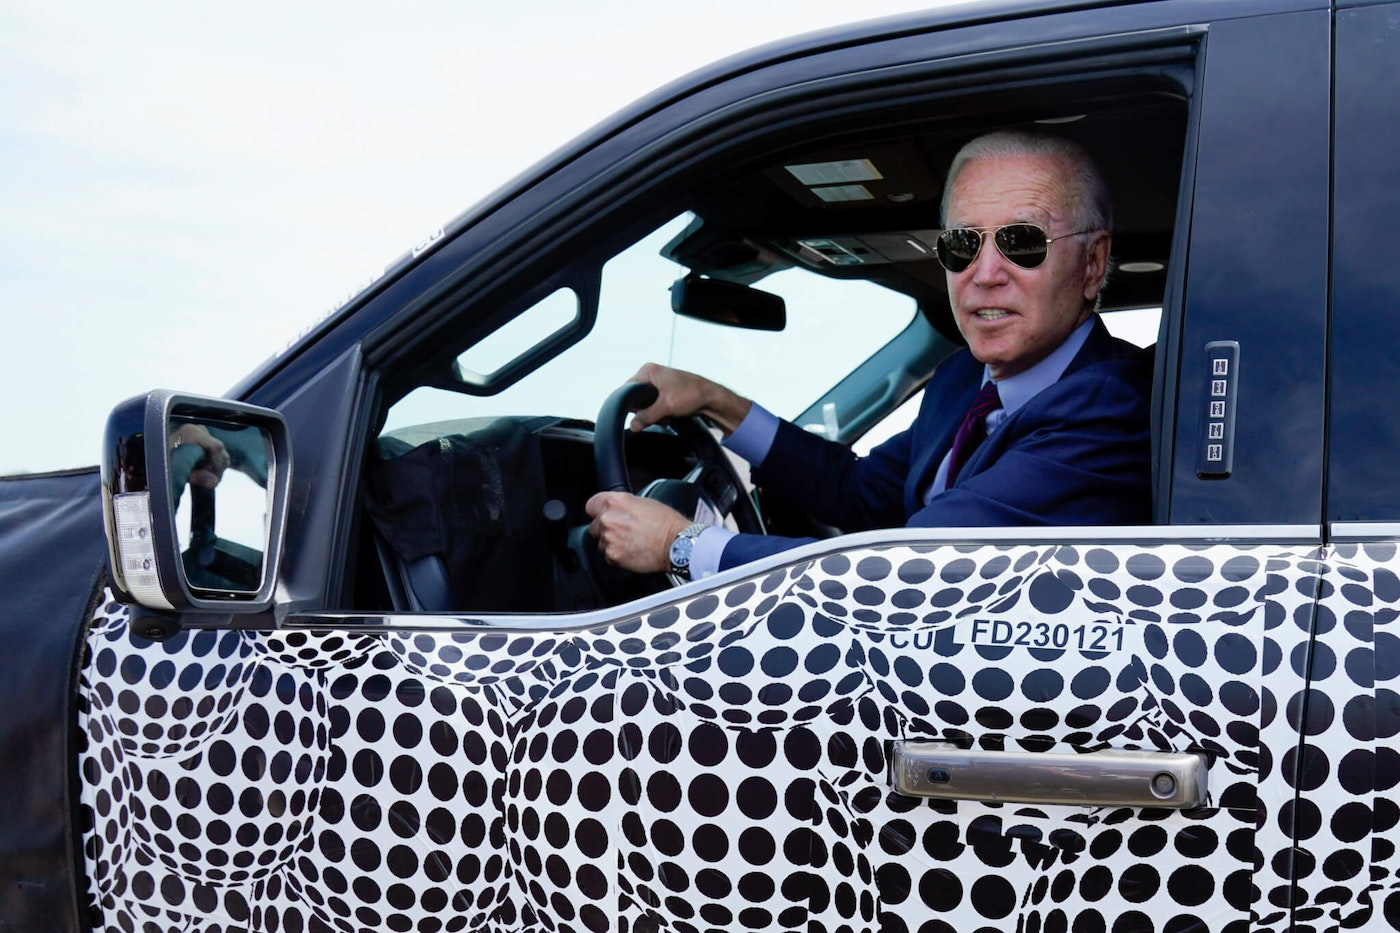 President Joe Biden stops to talk to the media as he drives a Ford F-150 Lightning truck at Ford Dearborn Development Center, Tuesday, May 18, 2021, in Dearborn, Mich..